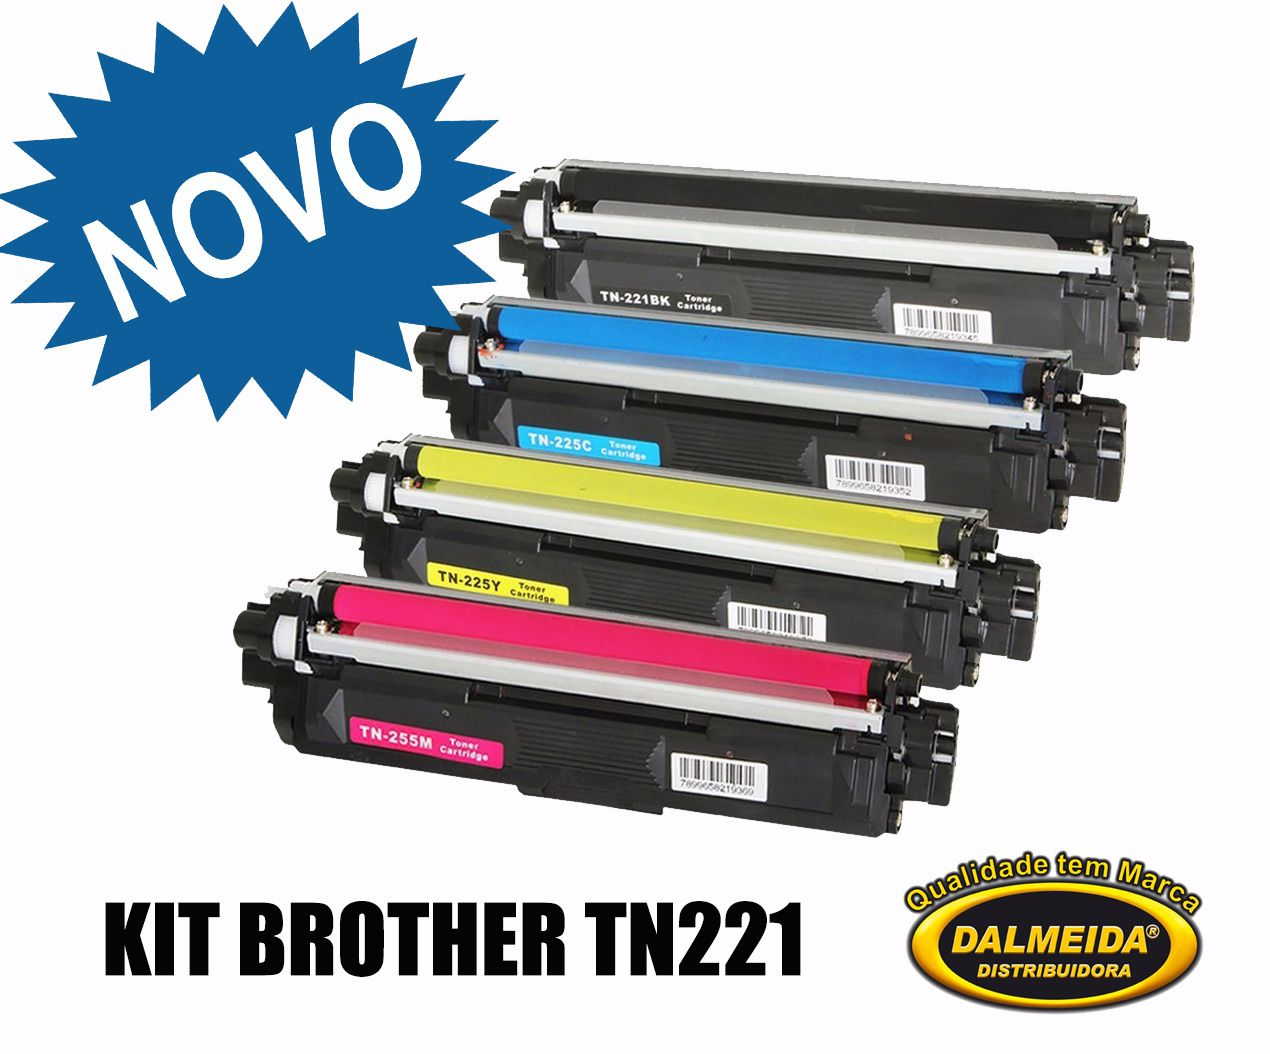 TONER BROTHER TN 221,KIT 4 CORES BK/MG/CYAN/YELLOW | HL3140 HL3170 DCP9020 MFC9130 MFC9330 | COMPATIVEL Premium 2.5k